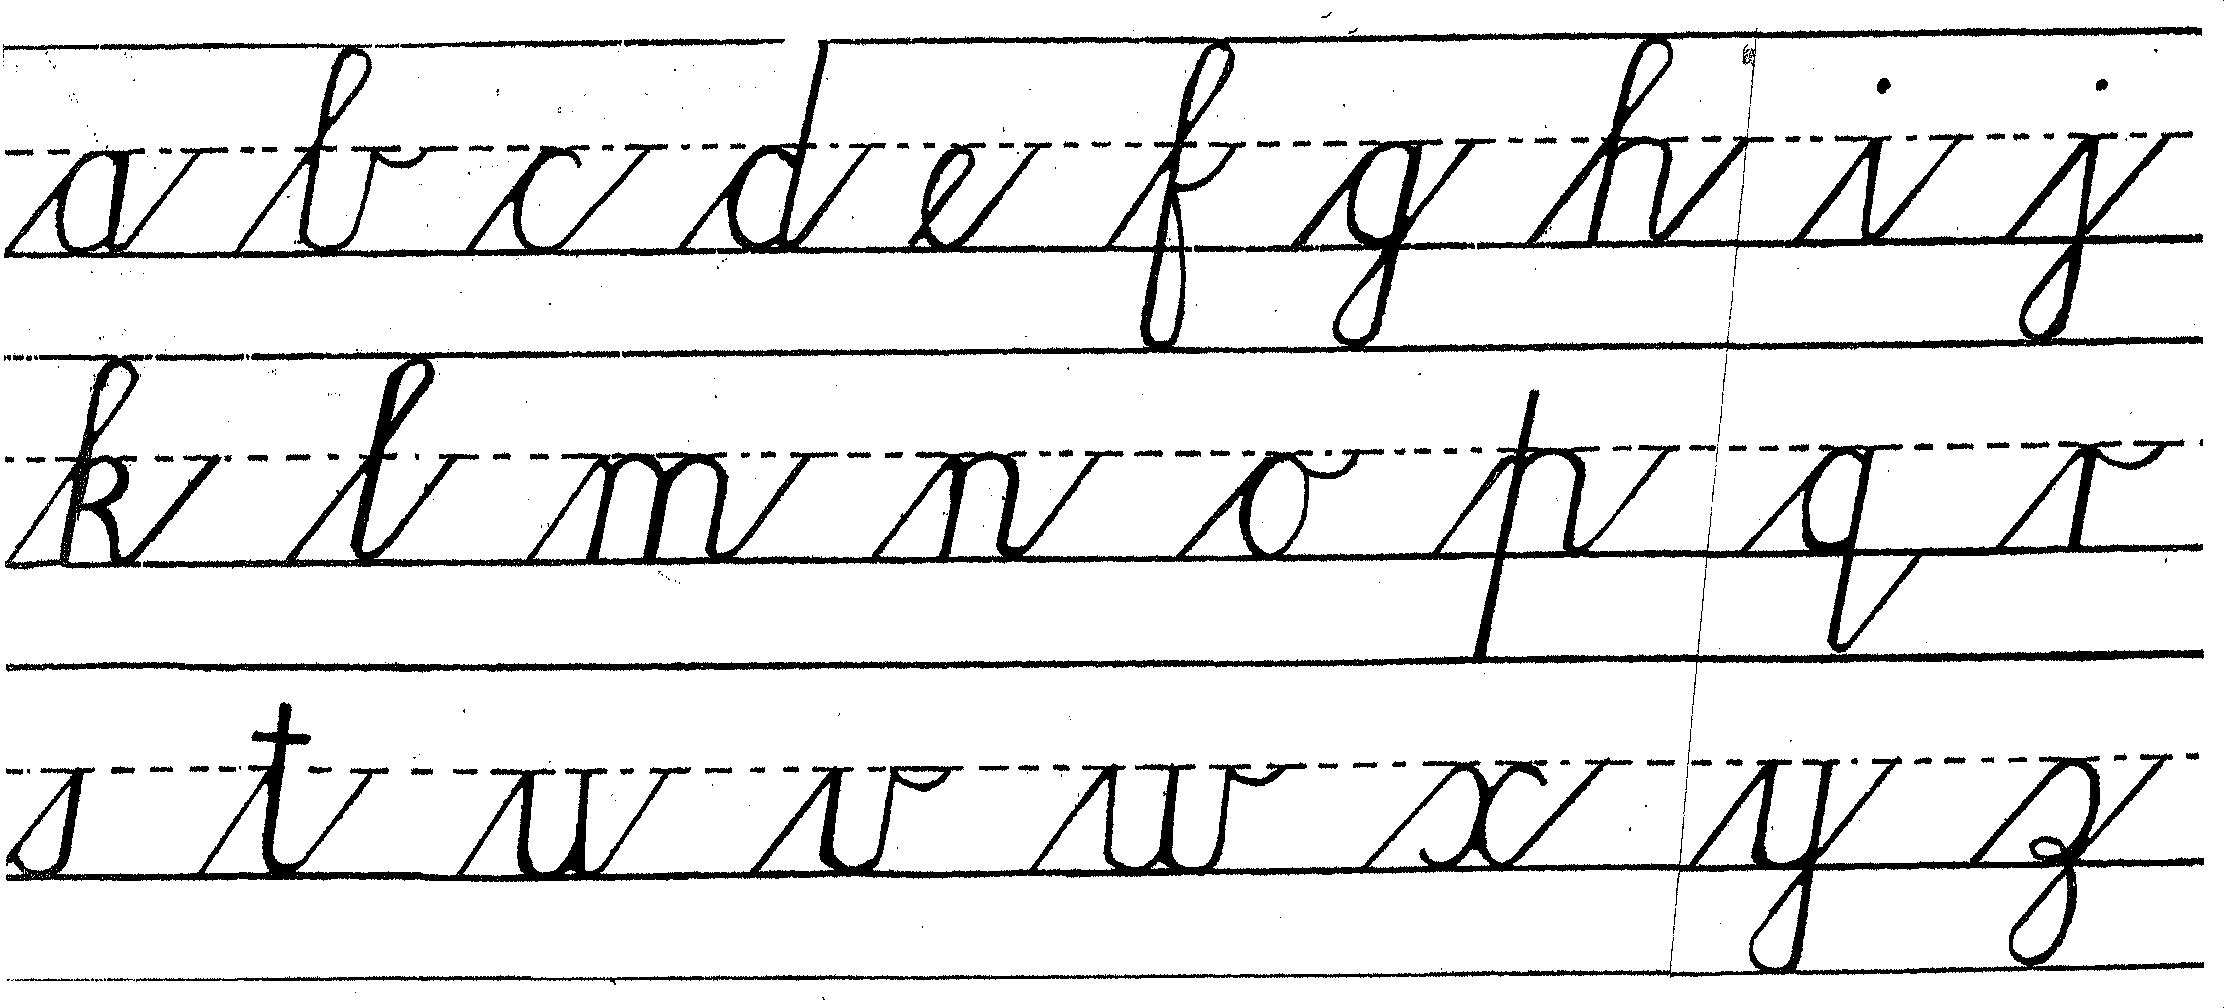 writing in cursive online When learning cursive writing, students should be taught tips such as tilting their paper and relaxing their grip, as well as how to recognize, form, and connect cursive letters play to learn: teachers or students select a list to turn into a.